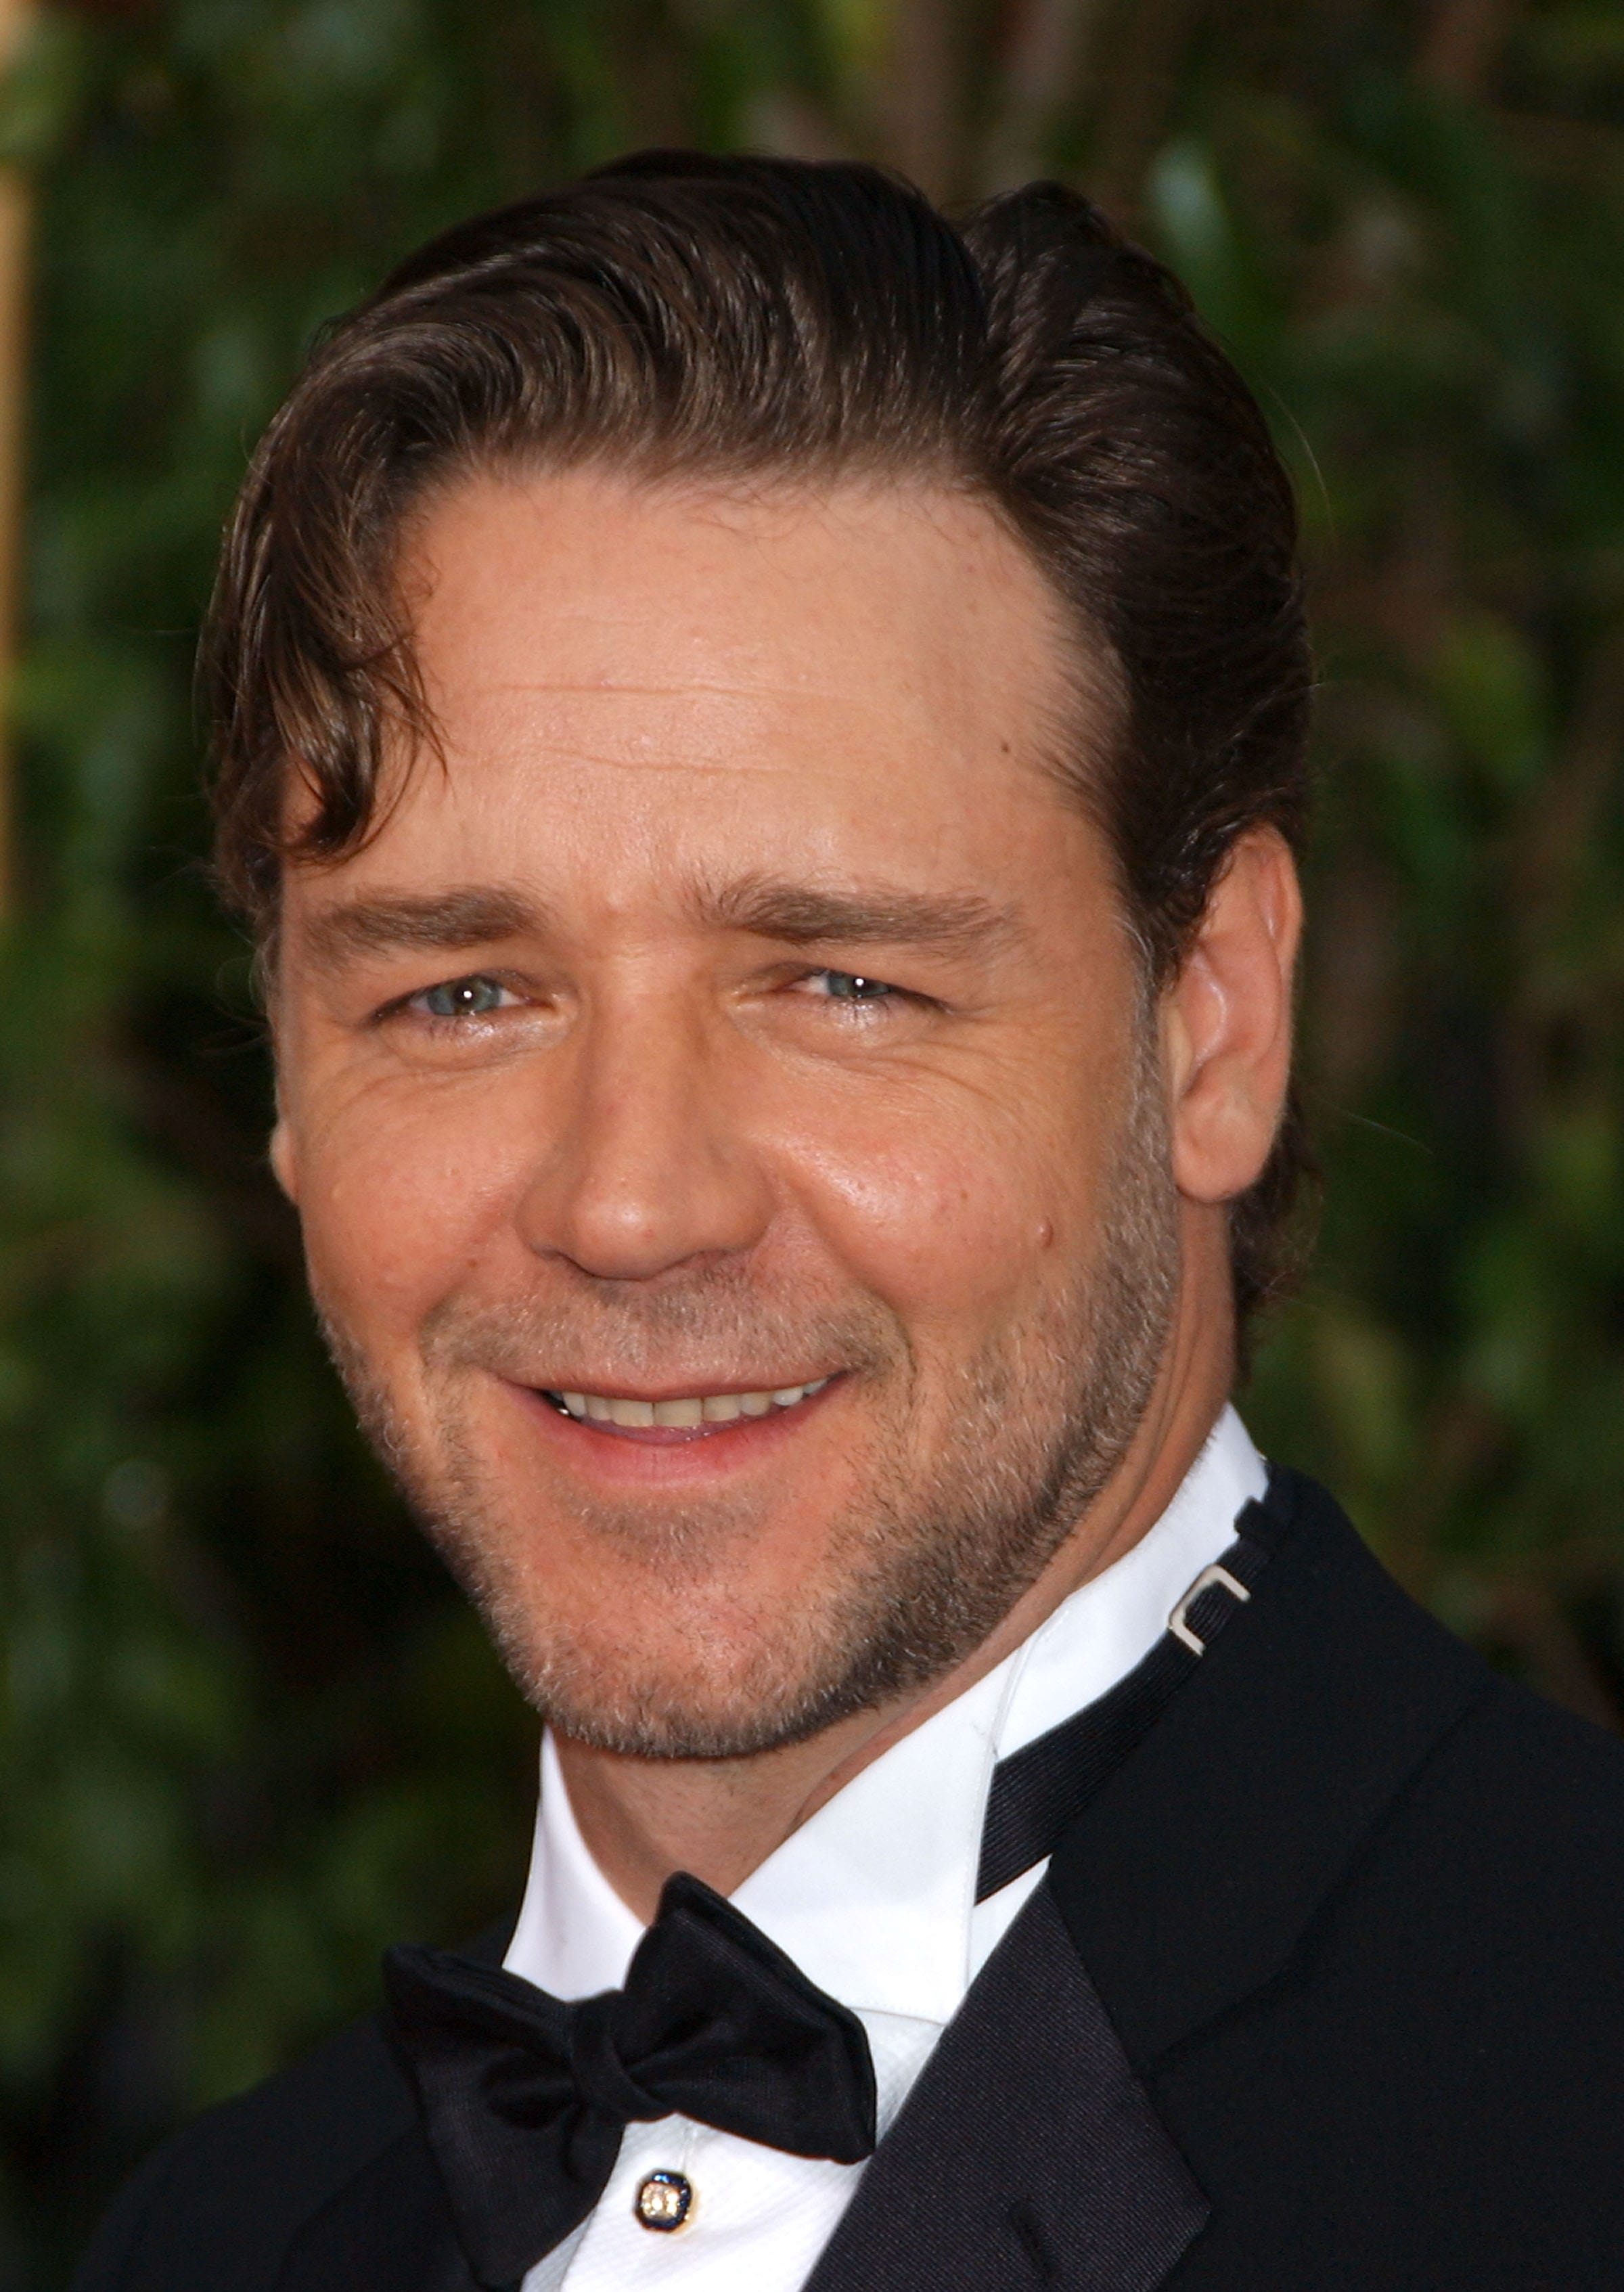 Russell Crowe Full hd wallpapers